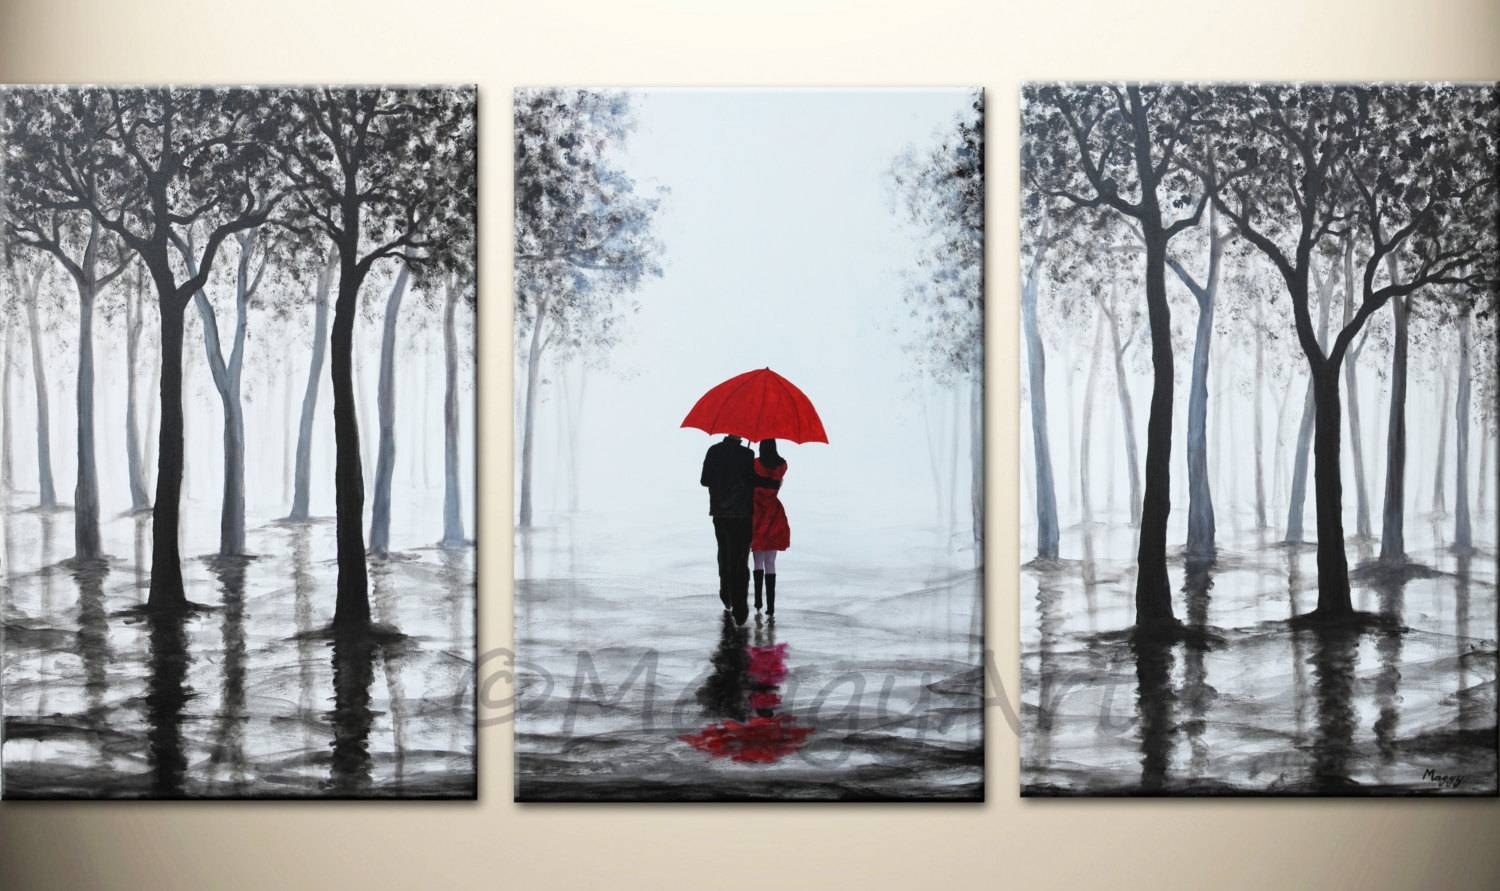 Original Acrylic Painting72X36 Inch Walking In Rain Black throughout 2018 Black And White Wall Art With Red